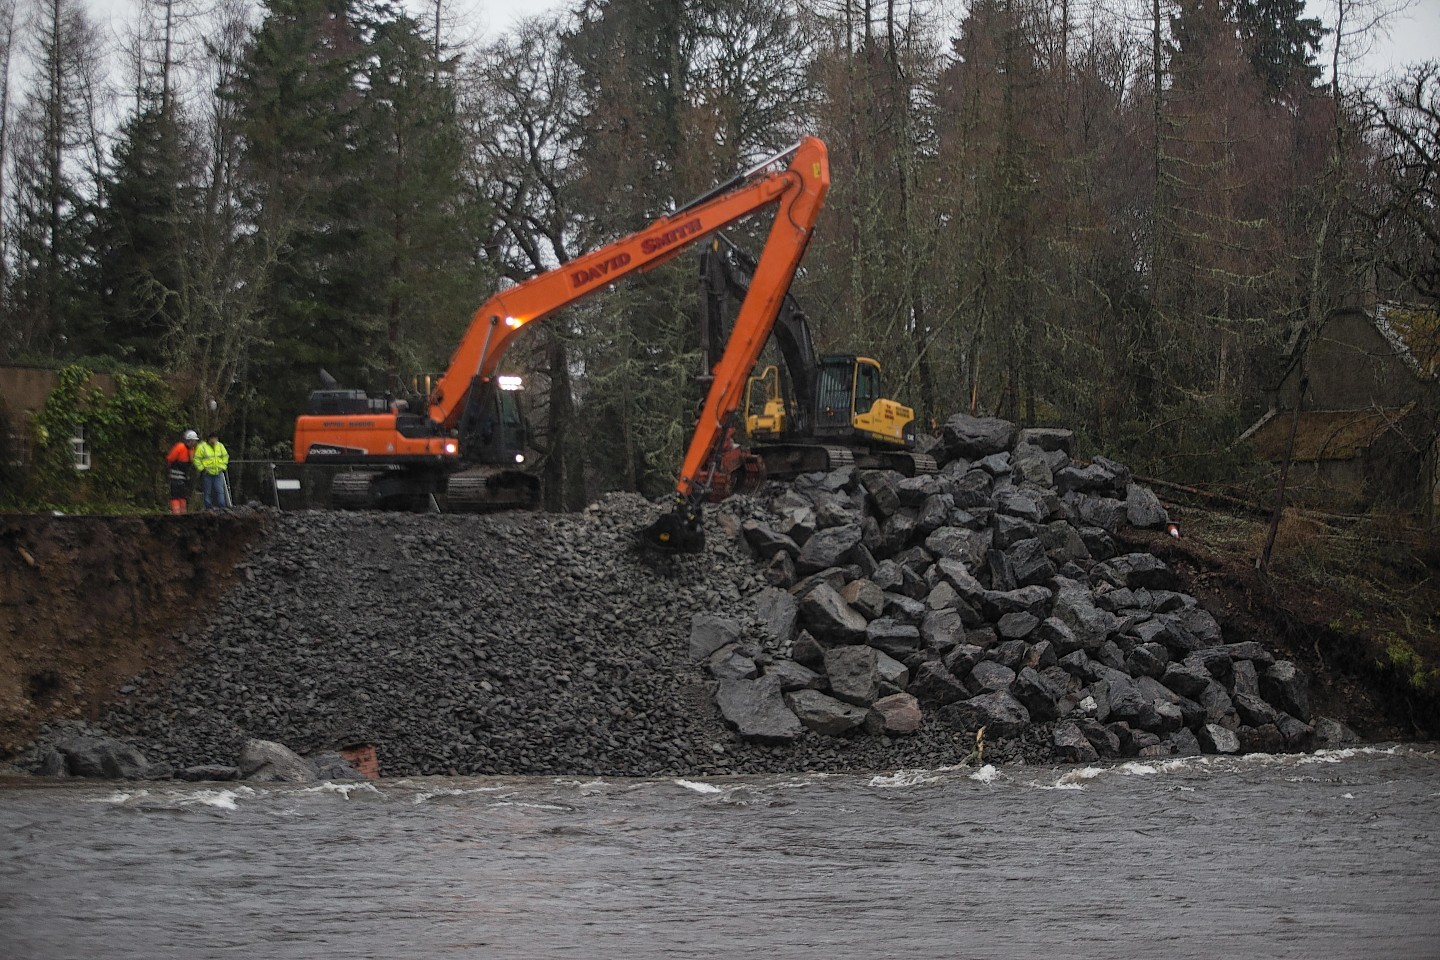 Rocks and boulders added to the riverbank